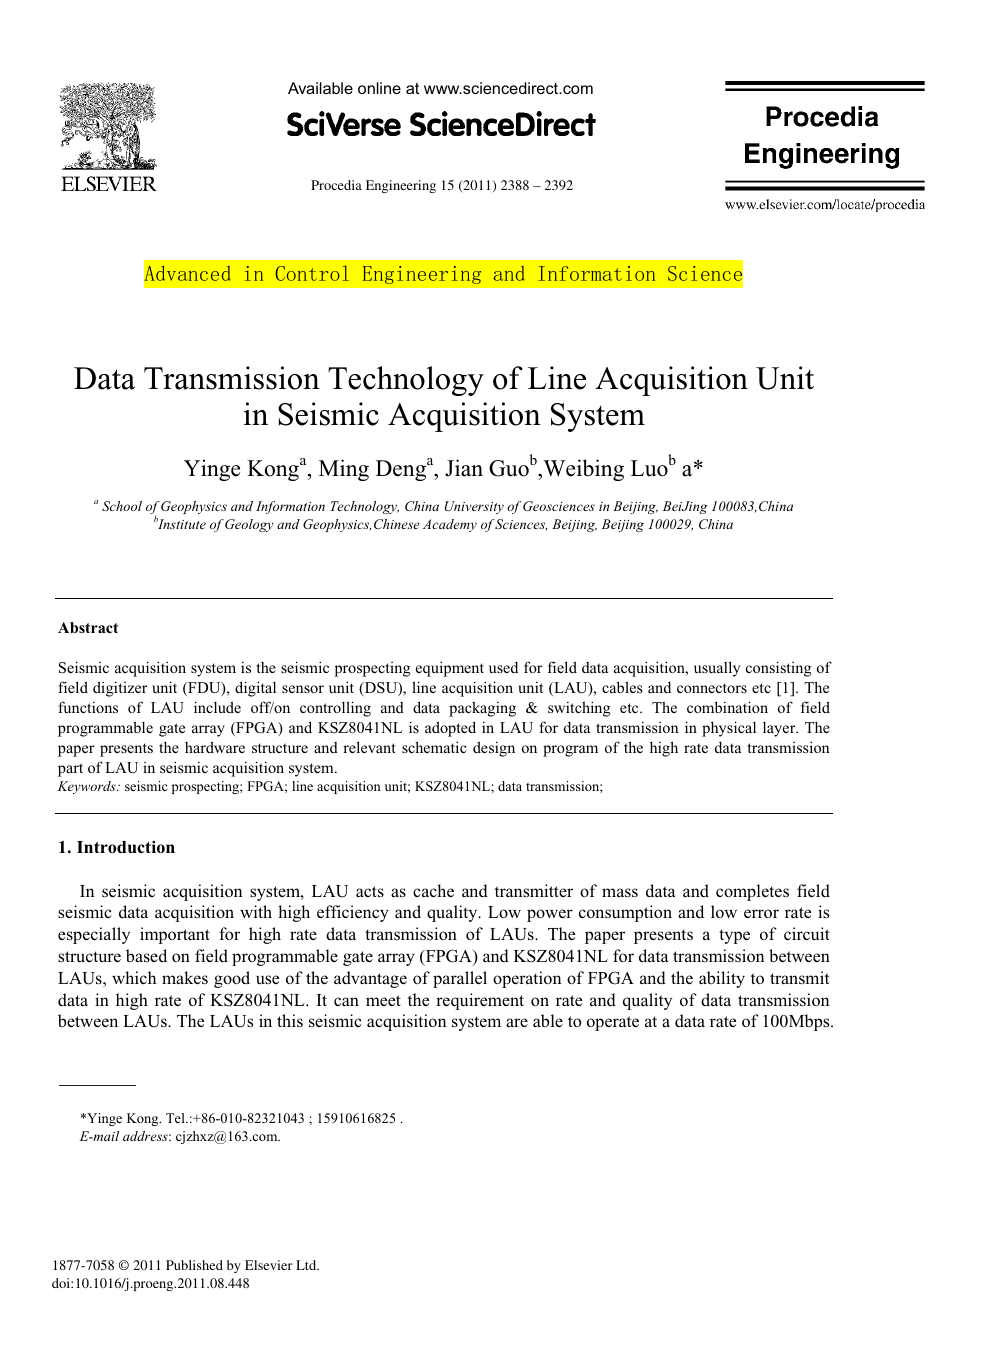 Data Transmission Technology of Line Acquisition Unit in